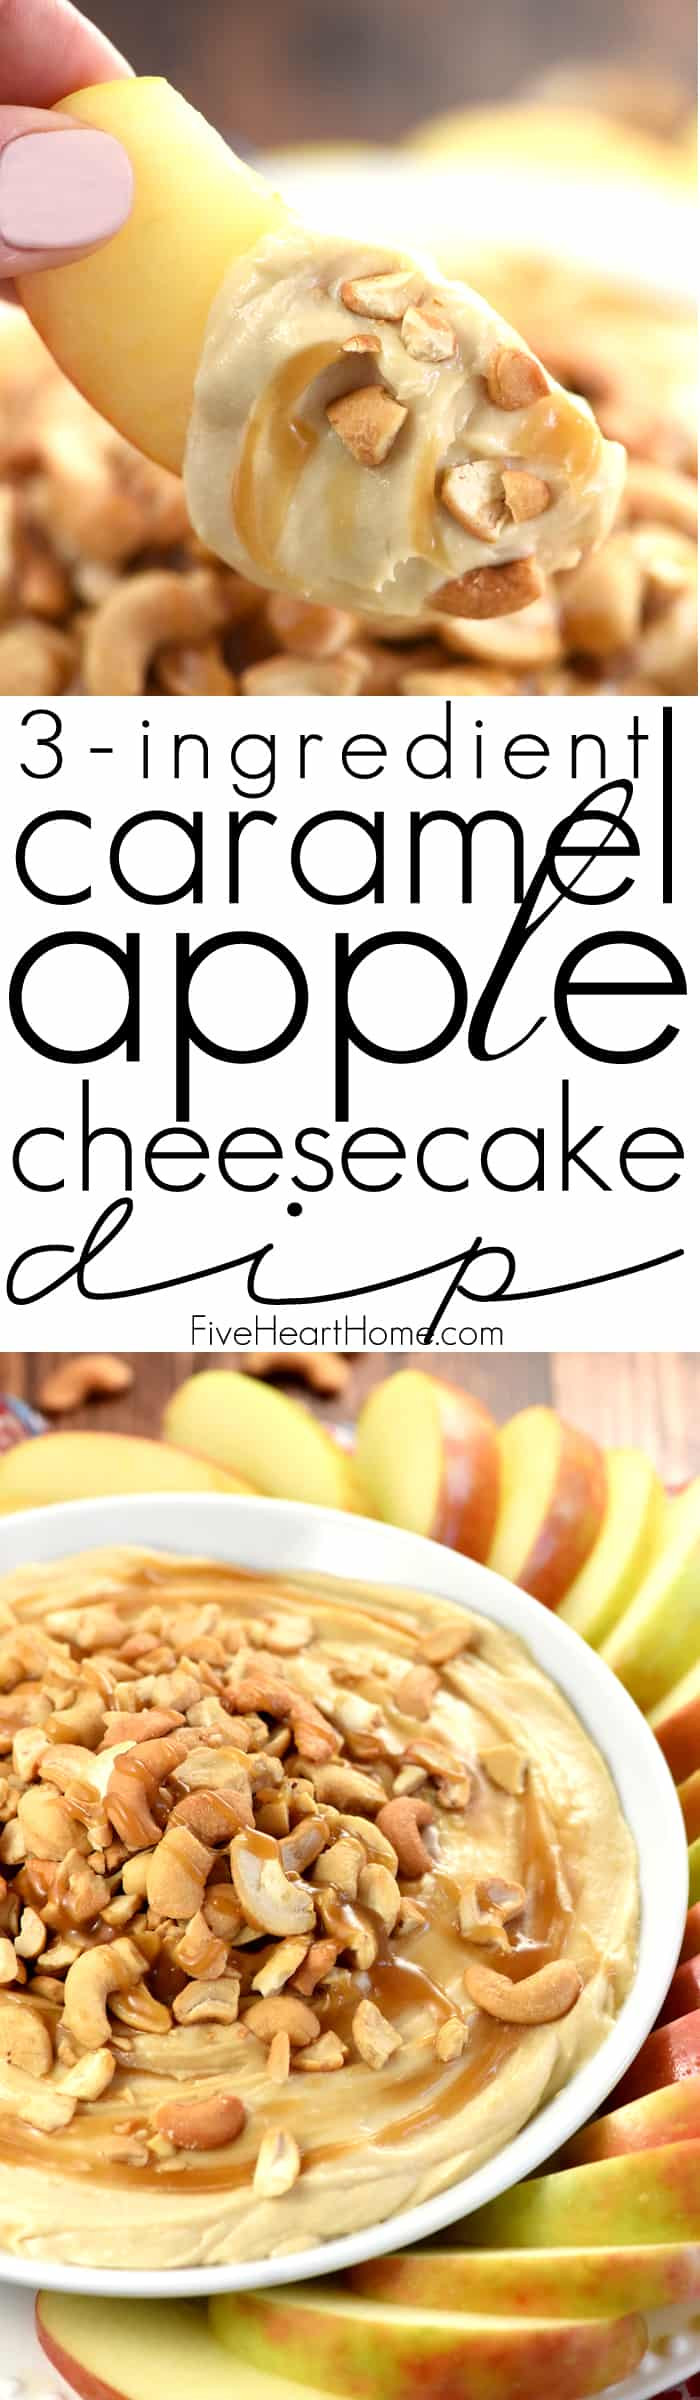 Caramel Apple Cheesecake Dip Collage and Text Overlay